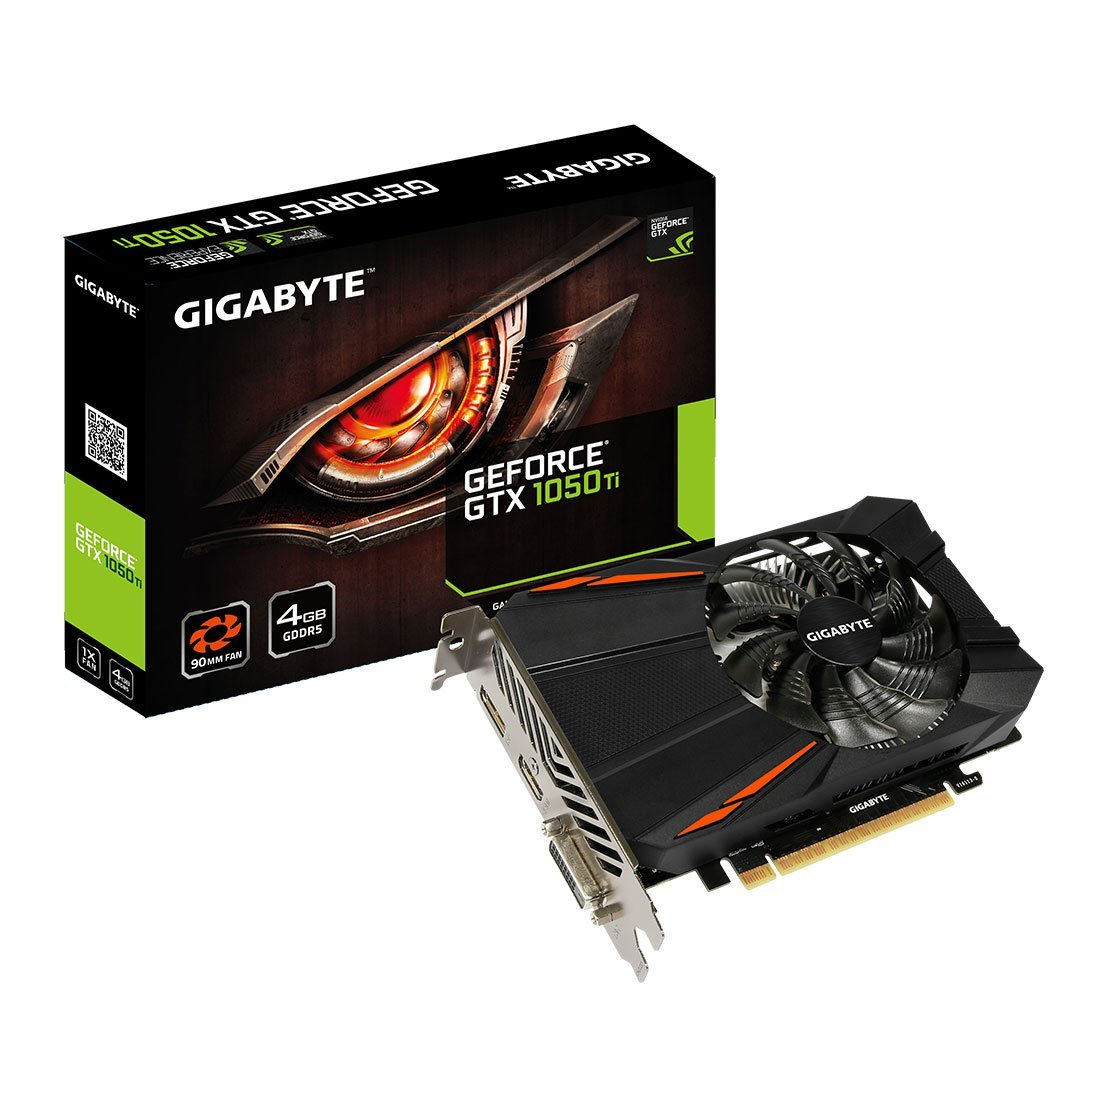 Gigabyte GeForce GTX 1050 Ti D5